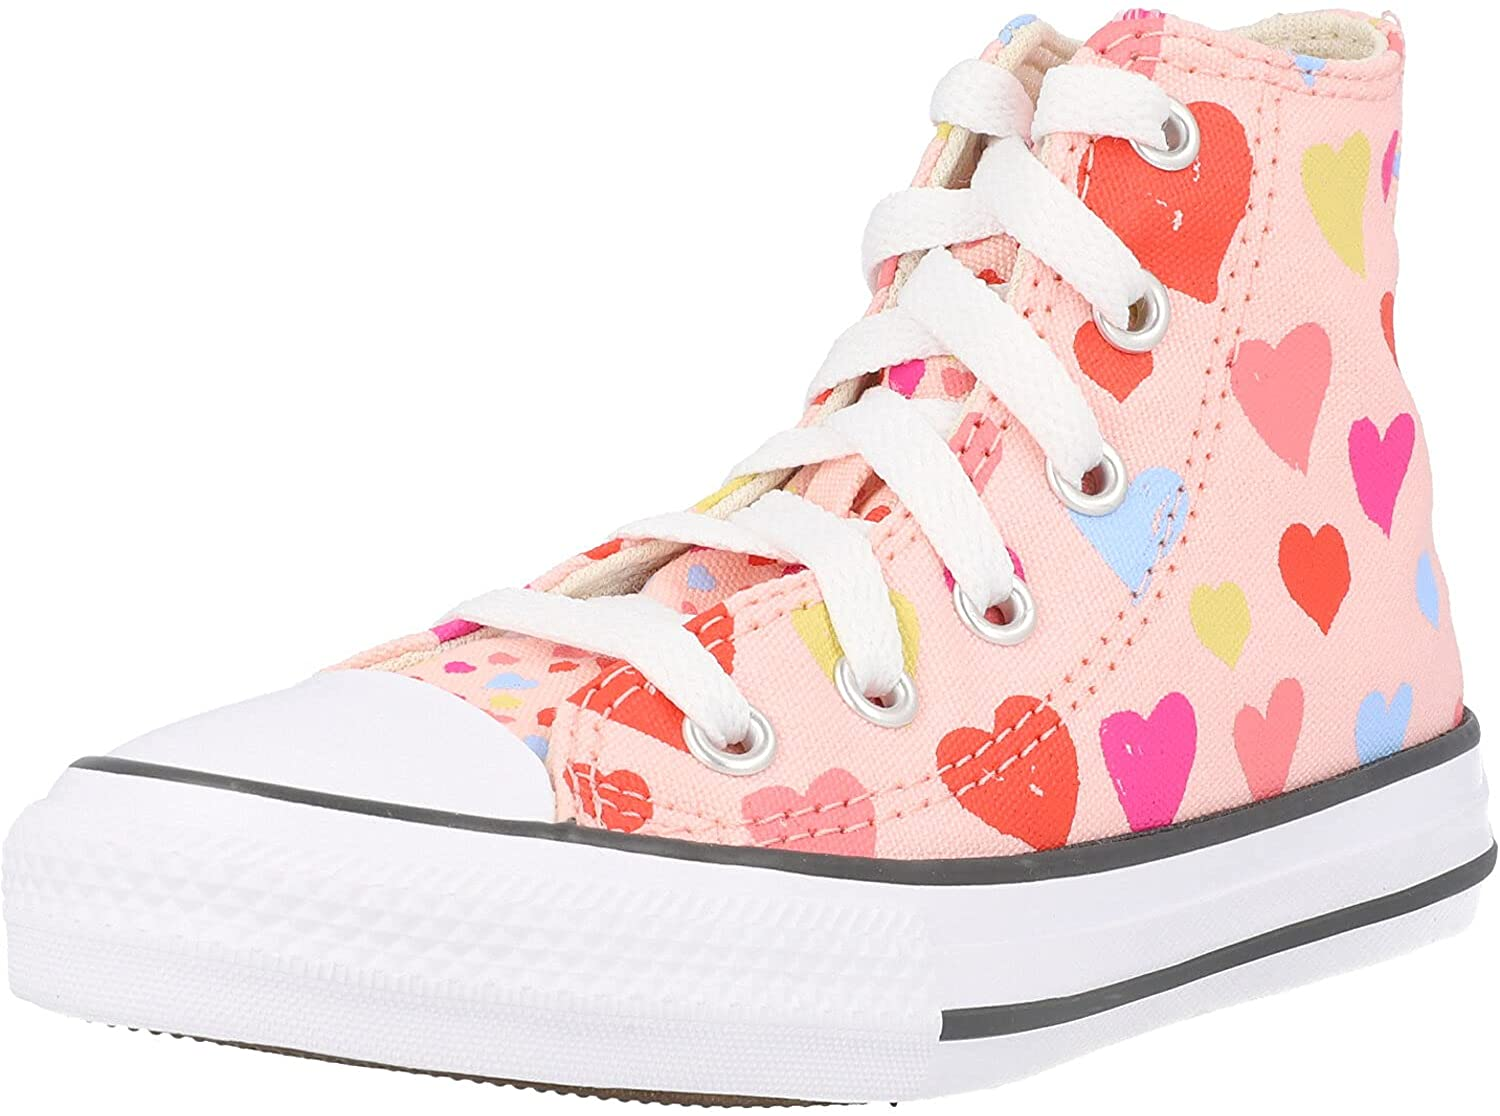 Converse All Star Sunflower Pink Limited Special Price Trainers Junior Jacksonville Mall Hi